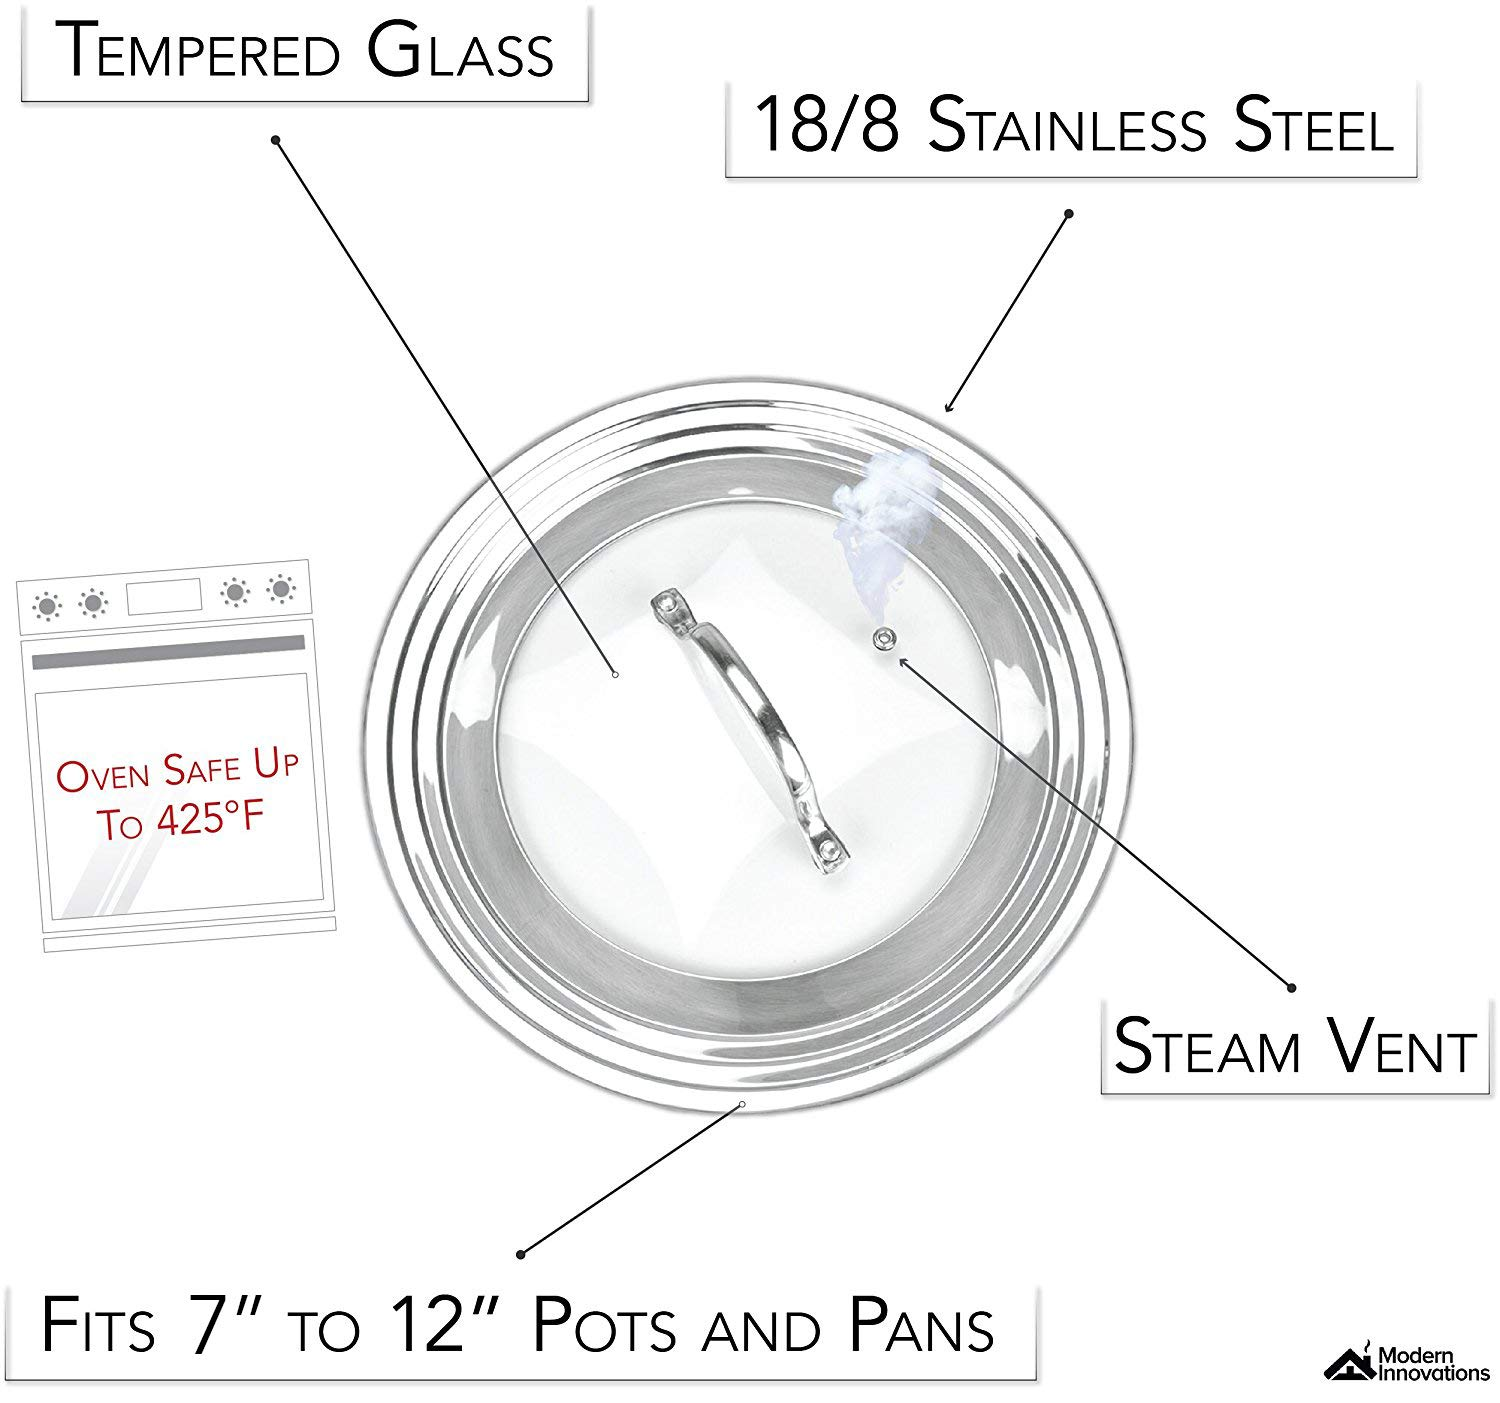 Universal Lid Stainless Steel 18/8 and Tempered Glass, Fits All 7'' to 12'' Pots and Pans, Replacement Frying Pan Cover and Cookware Lids by Modern Innovations (Image #3)